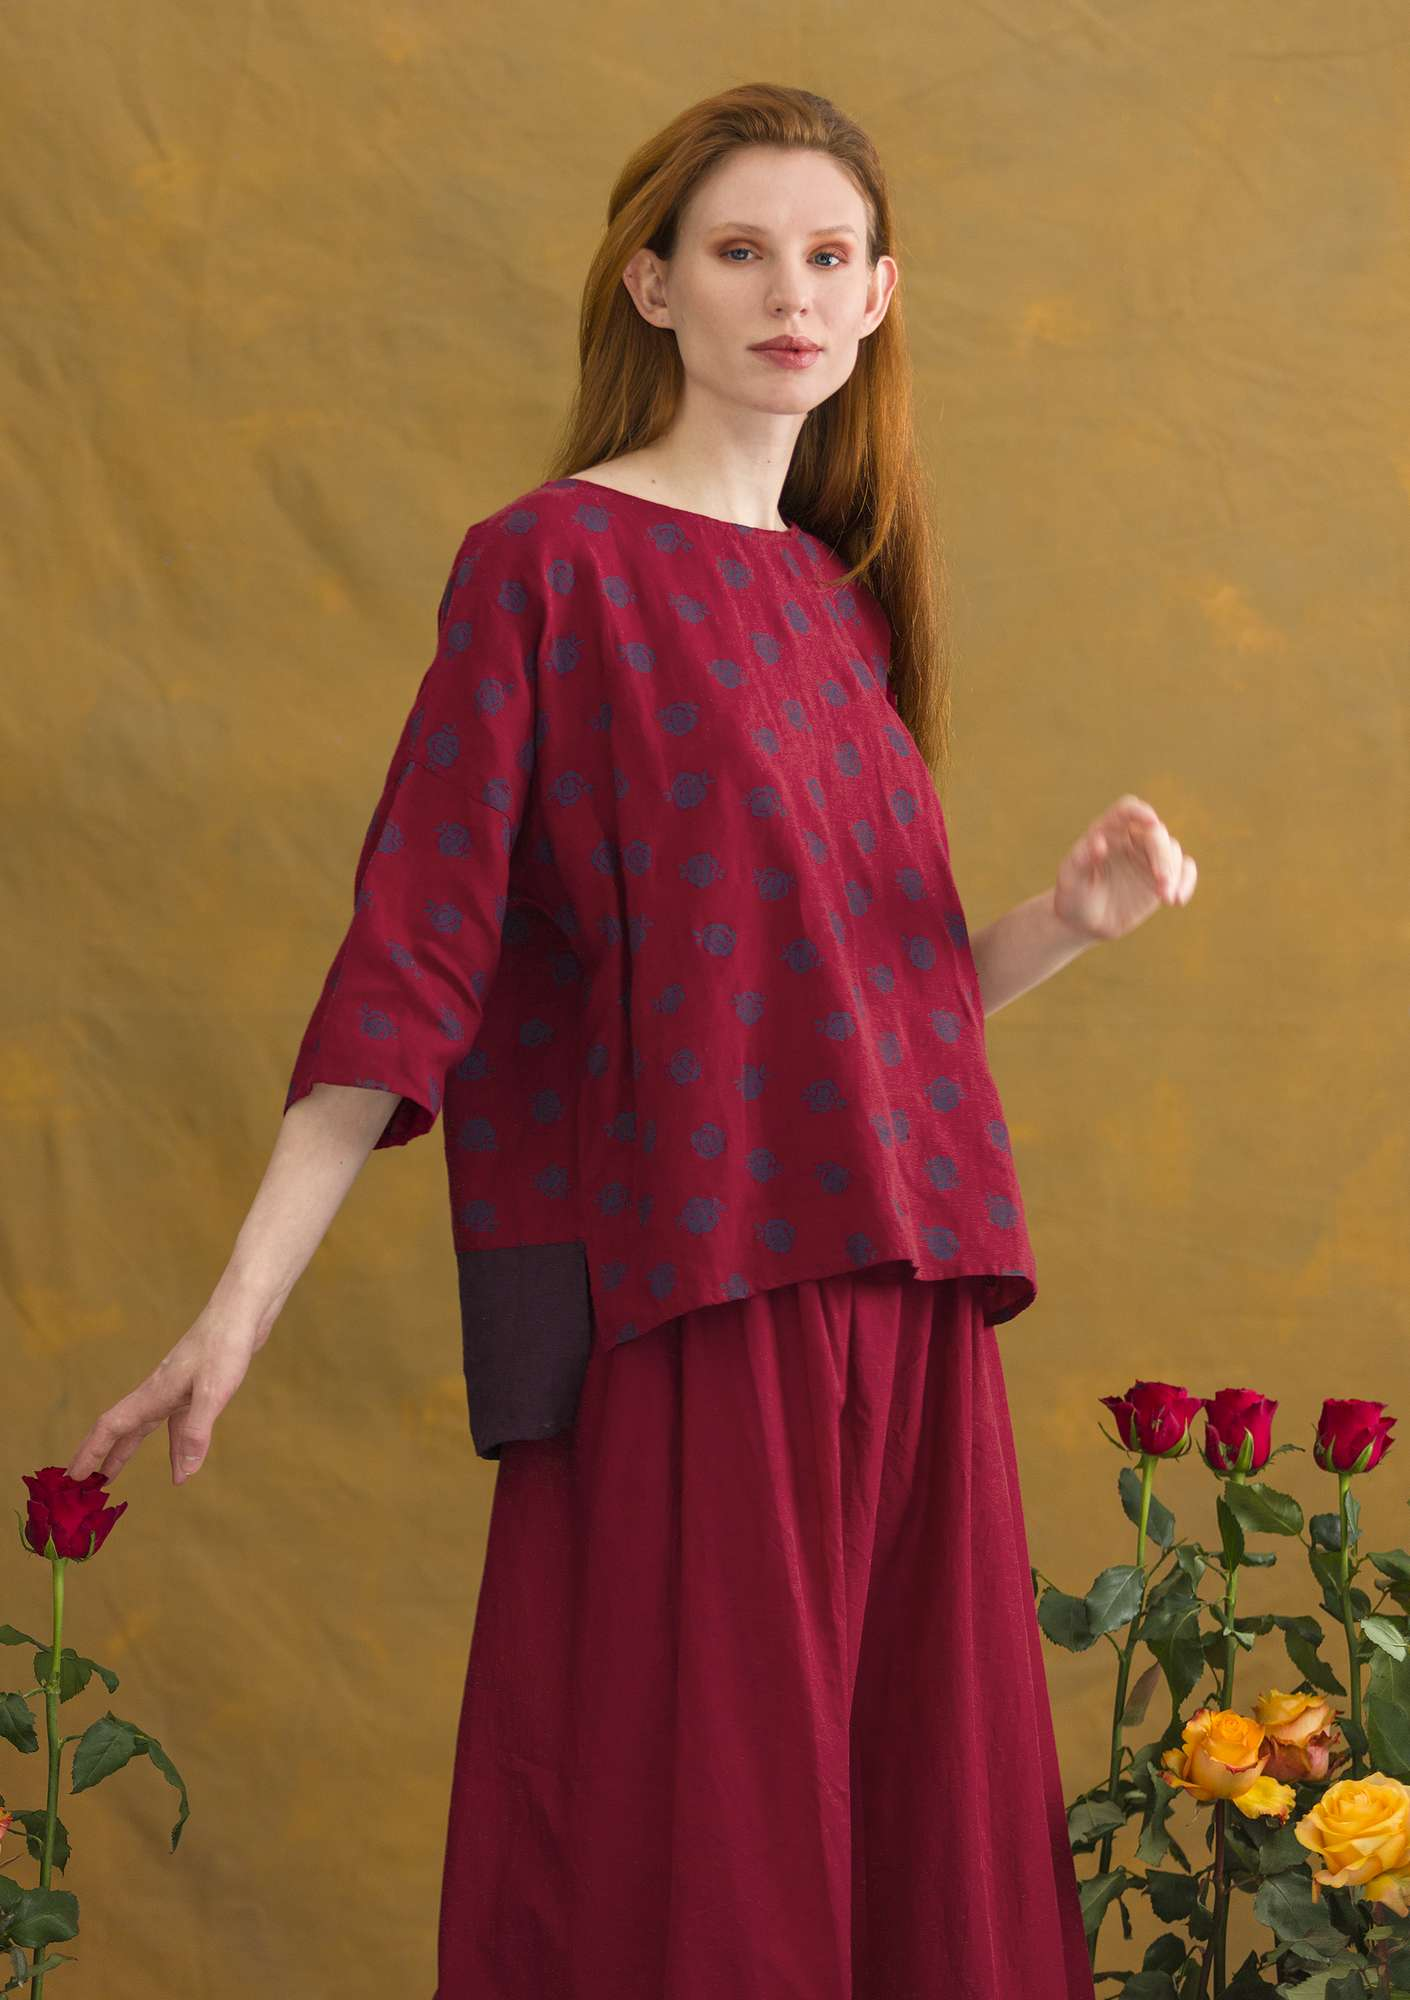 Linros blouse cranberry/patterned